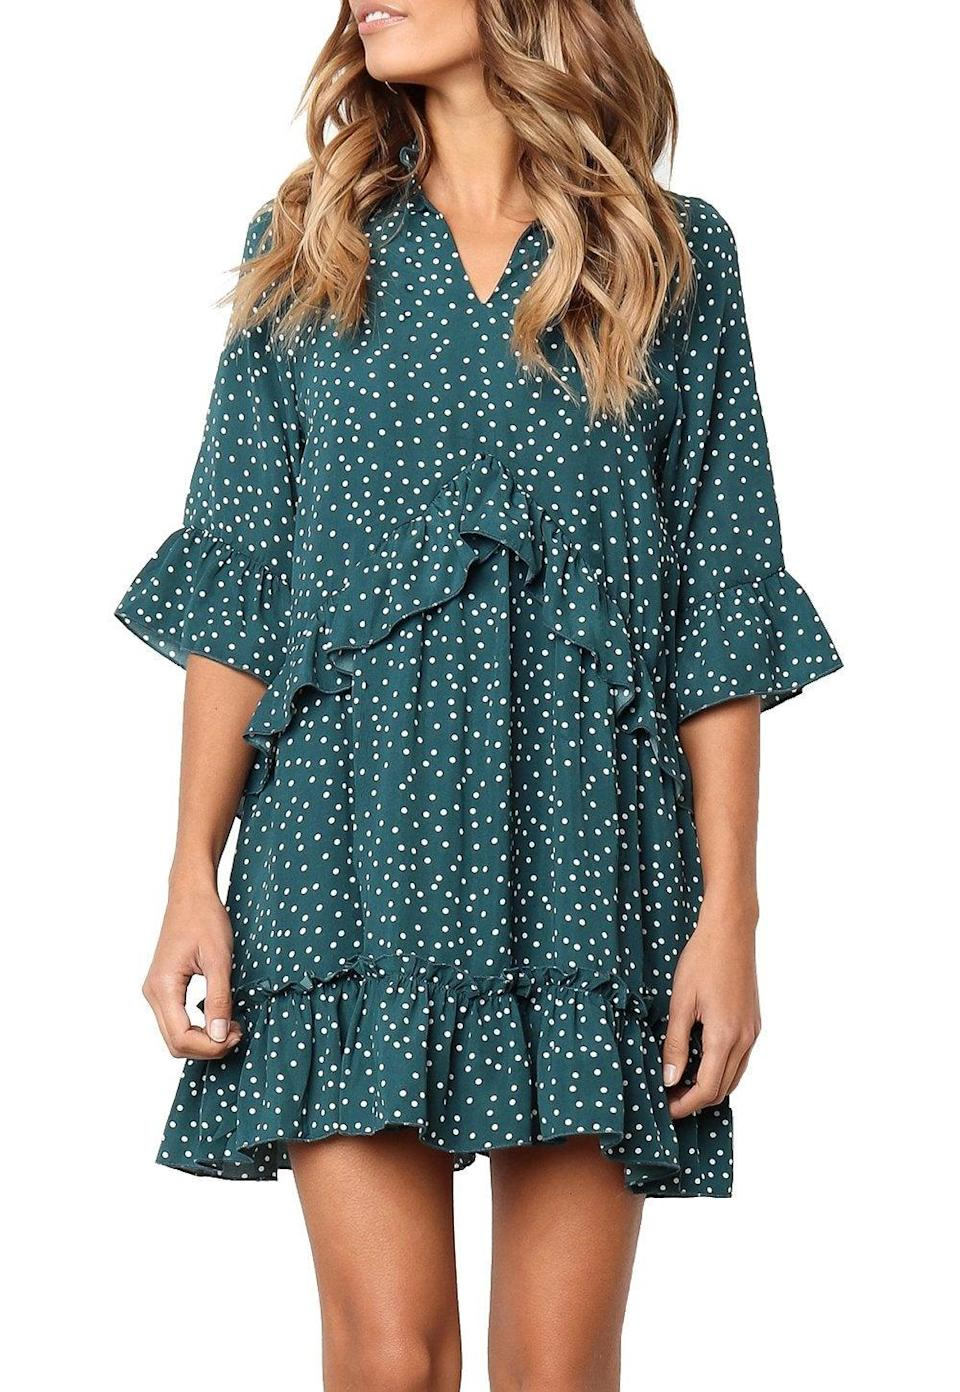 """<h2>28% Off MITILLY Ruffle Dot Dress</h2><br>Amazon is crawling with super-affordable """"viral"""" finds like this under-$30, summer-ready frock — lucky for you, many of them are on sale today.<br><br><em>Shop MITILLY at <strong><a href=""""https://amzn.to/2TTPvnH"""" rel=""""nofollow noopener"""" target=""""_blank"""" data-ylk=""""slk:Amazon"""" class=""""link rapid-noclick-resp"""">Amazon</a></strong></em><br><br><strong>Mitilly</strong> Ruffle Dot Dress, $, available at <a href=""""https://amzn.to/3wO3Y2P"""" rel=""""nofollow noopener"""" target=""""_blank"""" data-ylk=""""slk:Amazon"""" class=""""link rapid-noclick-resp"""">Amazon</a>"""